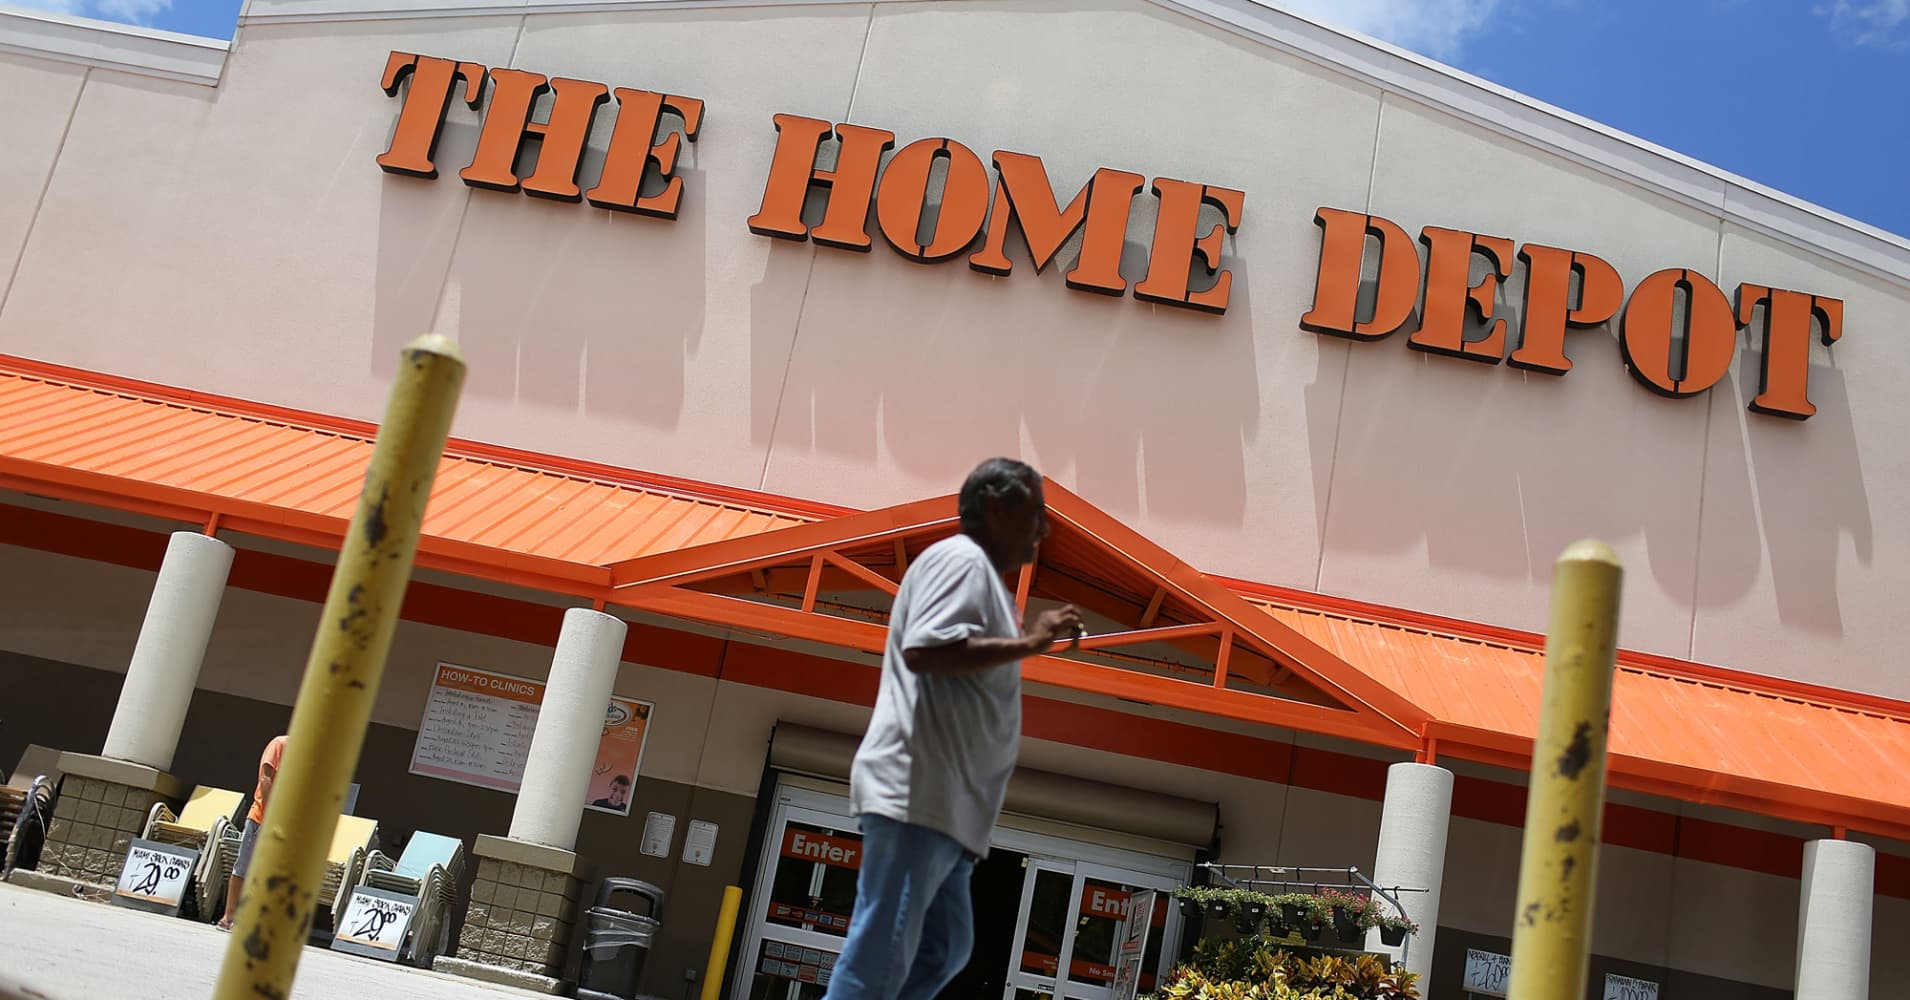 Home Depot Employees To Get Up To 1000 Bonus Due To Tax Reform